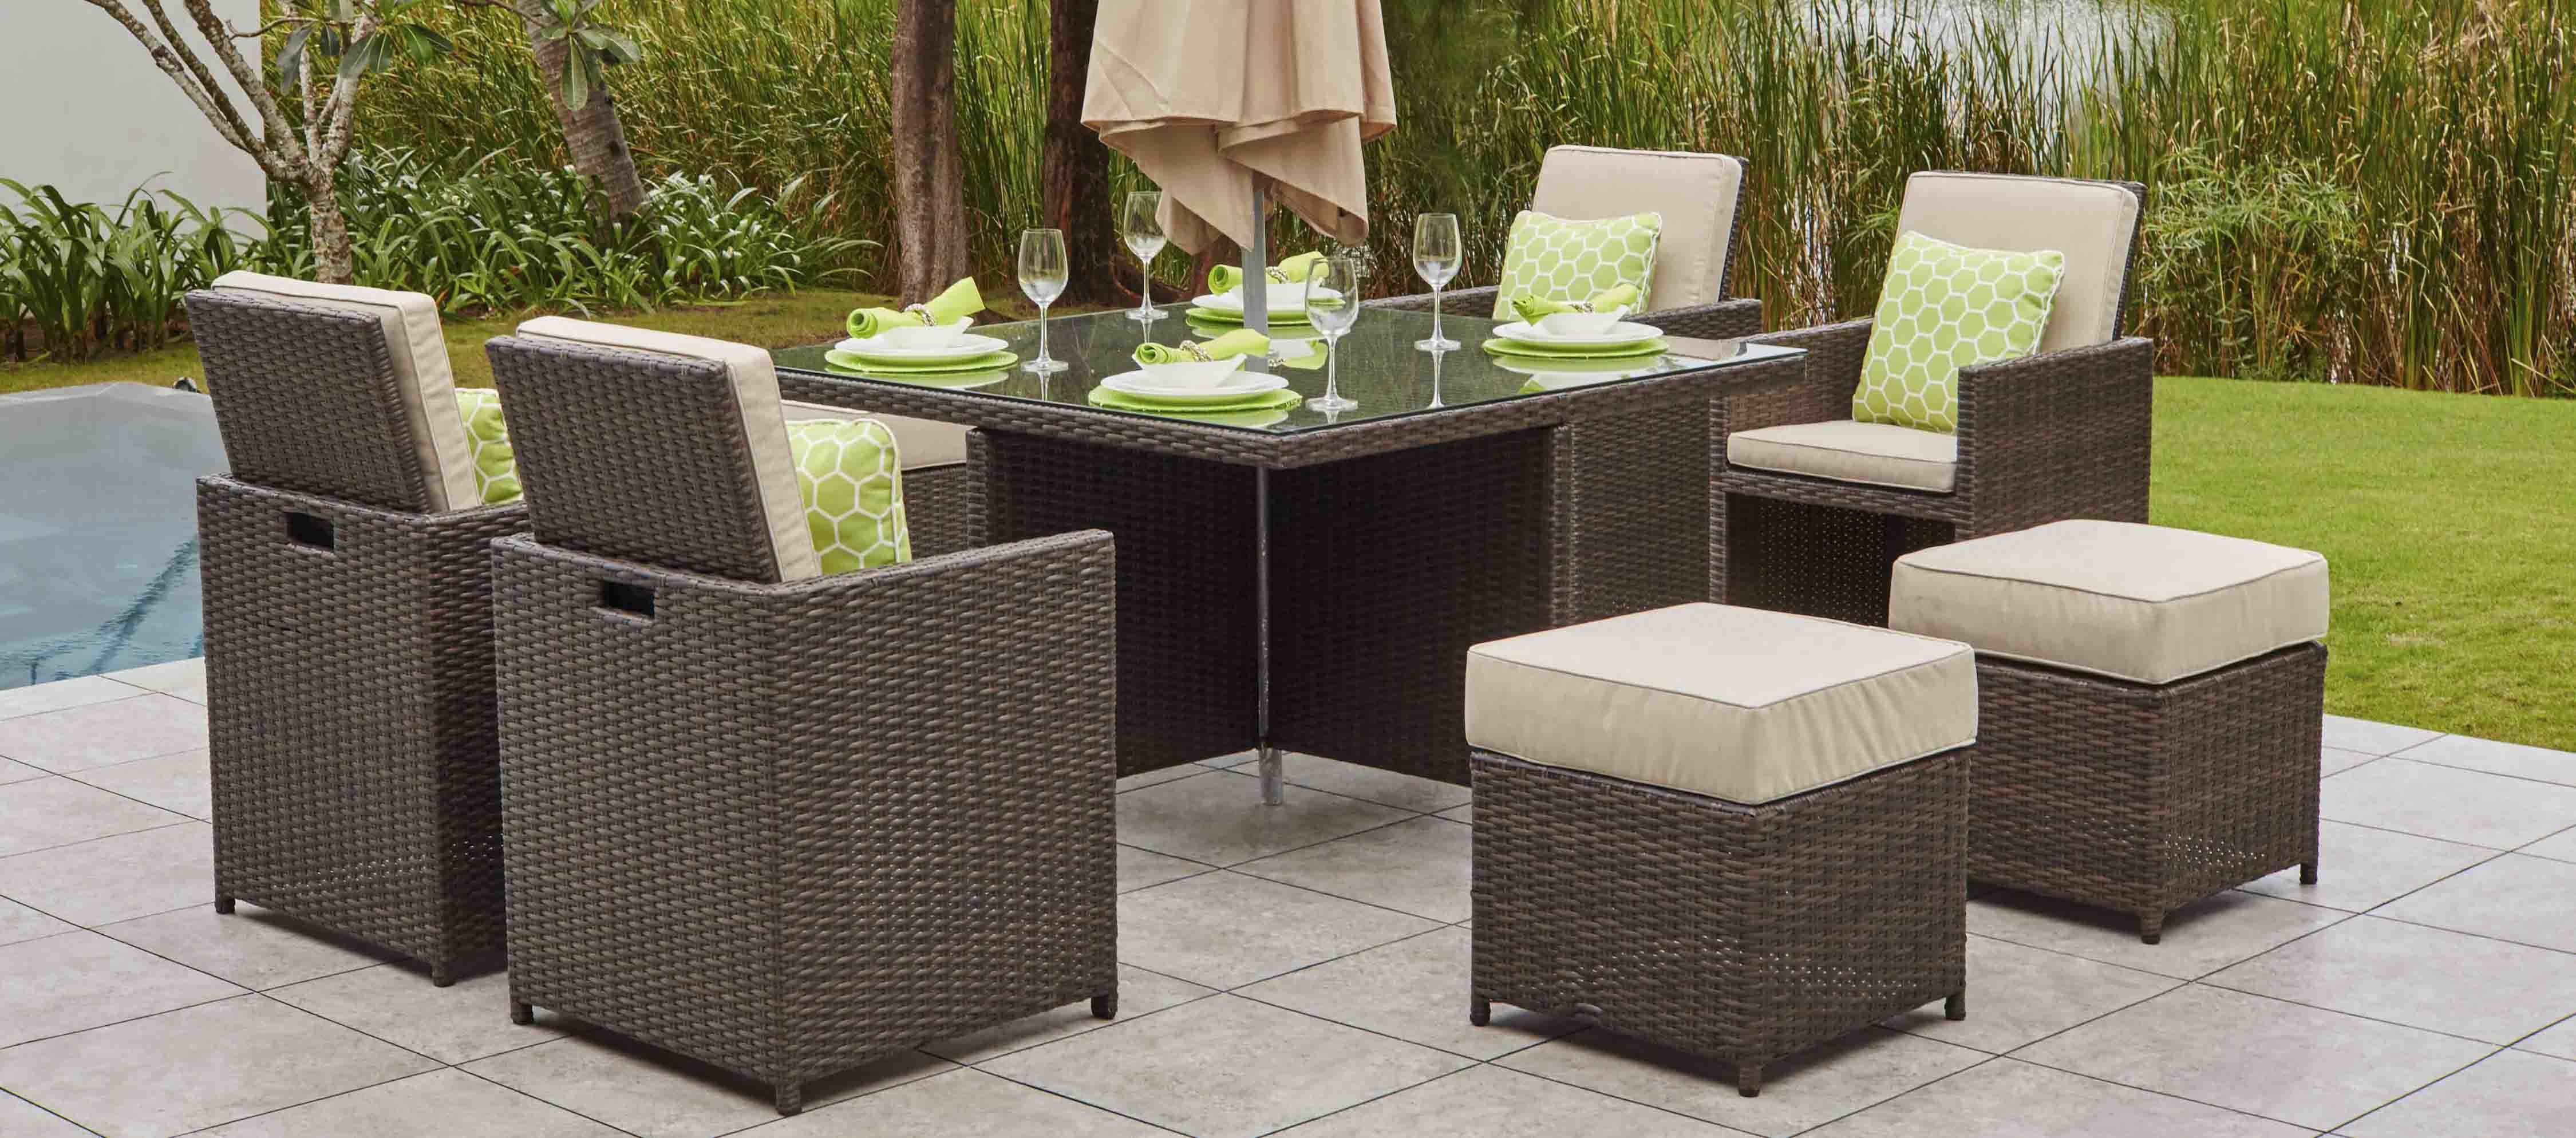 CUBO 4 - Cube Dining Set with Footstools & Parasol   Moda ...